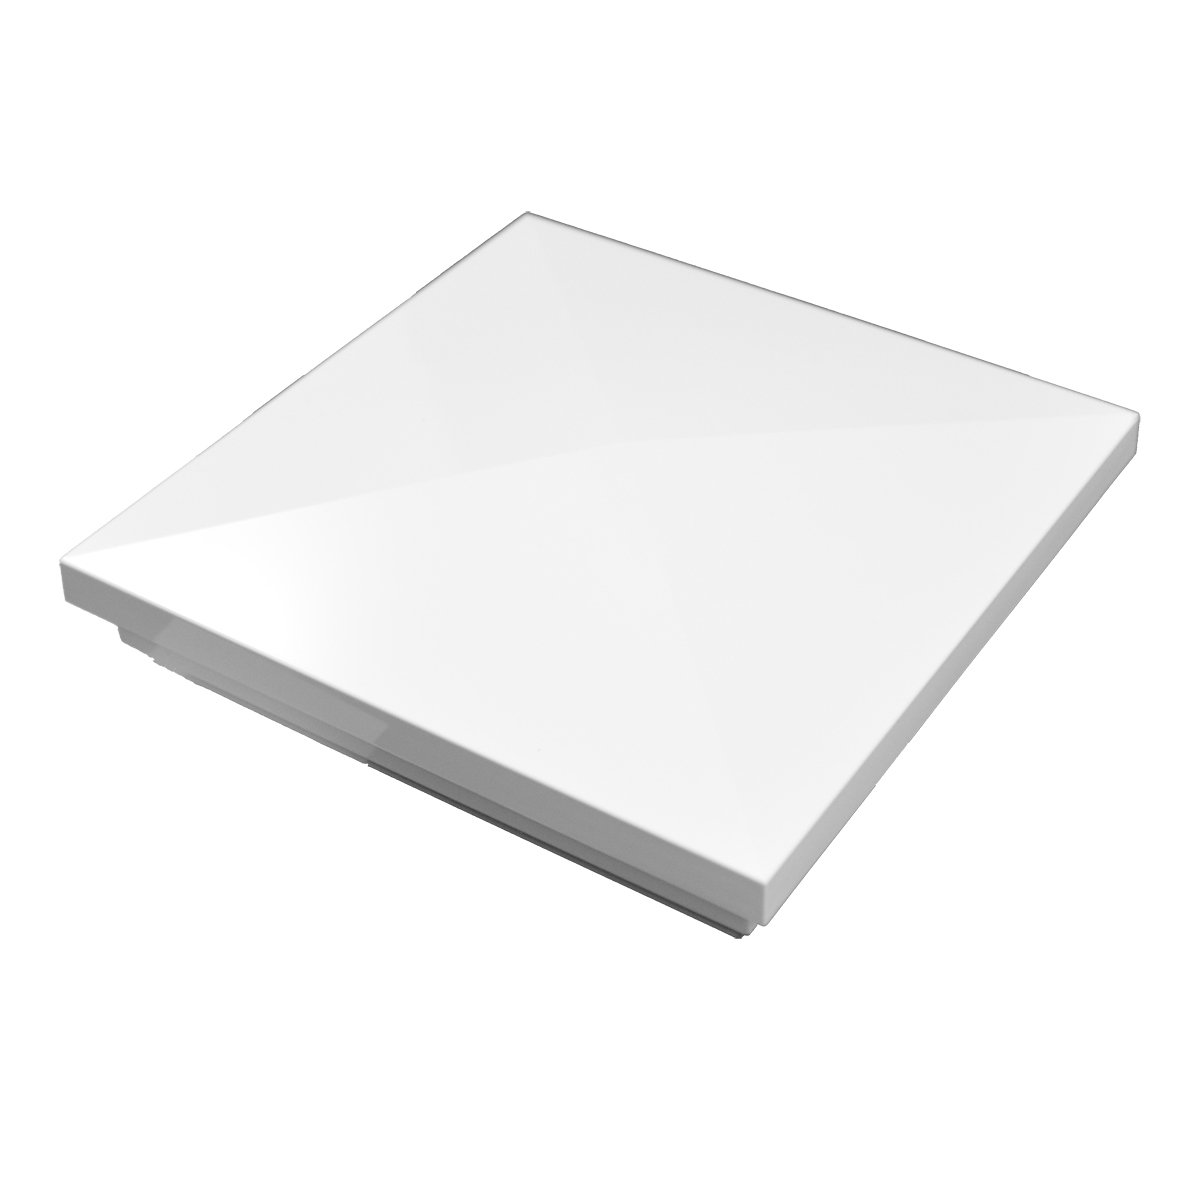 WEATHERABLES Durable White PVC Vinyl New England Post Cap For A True 6 Inch X 6 Inch Post | Single Pack | AWCP-NEWENG-6